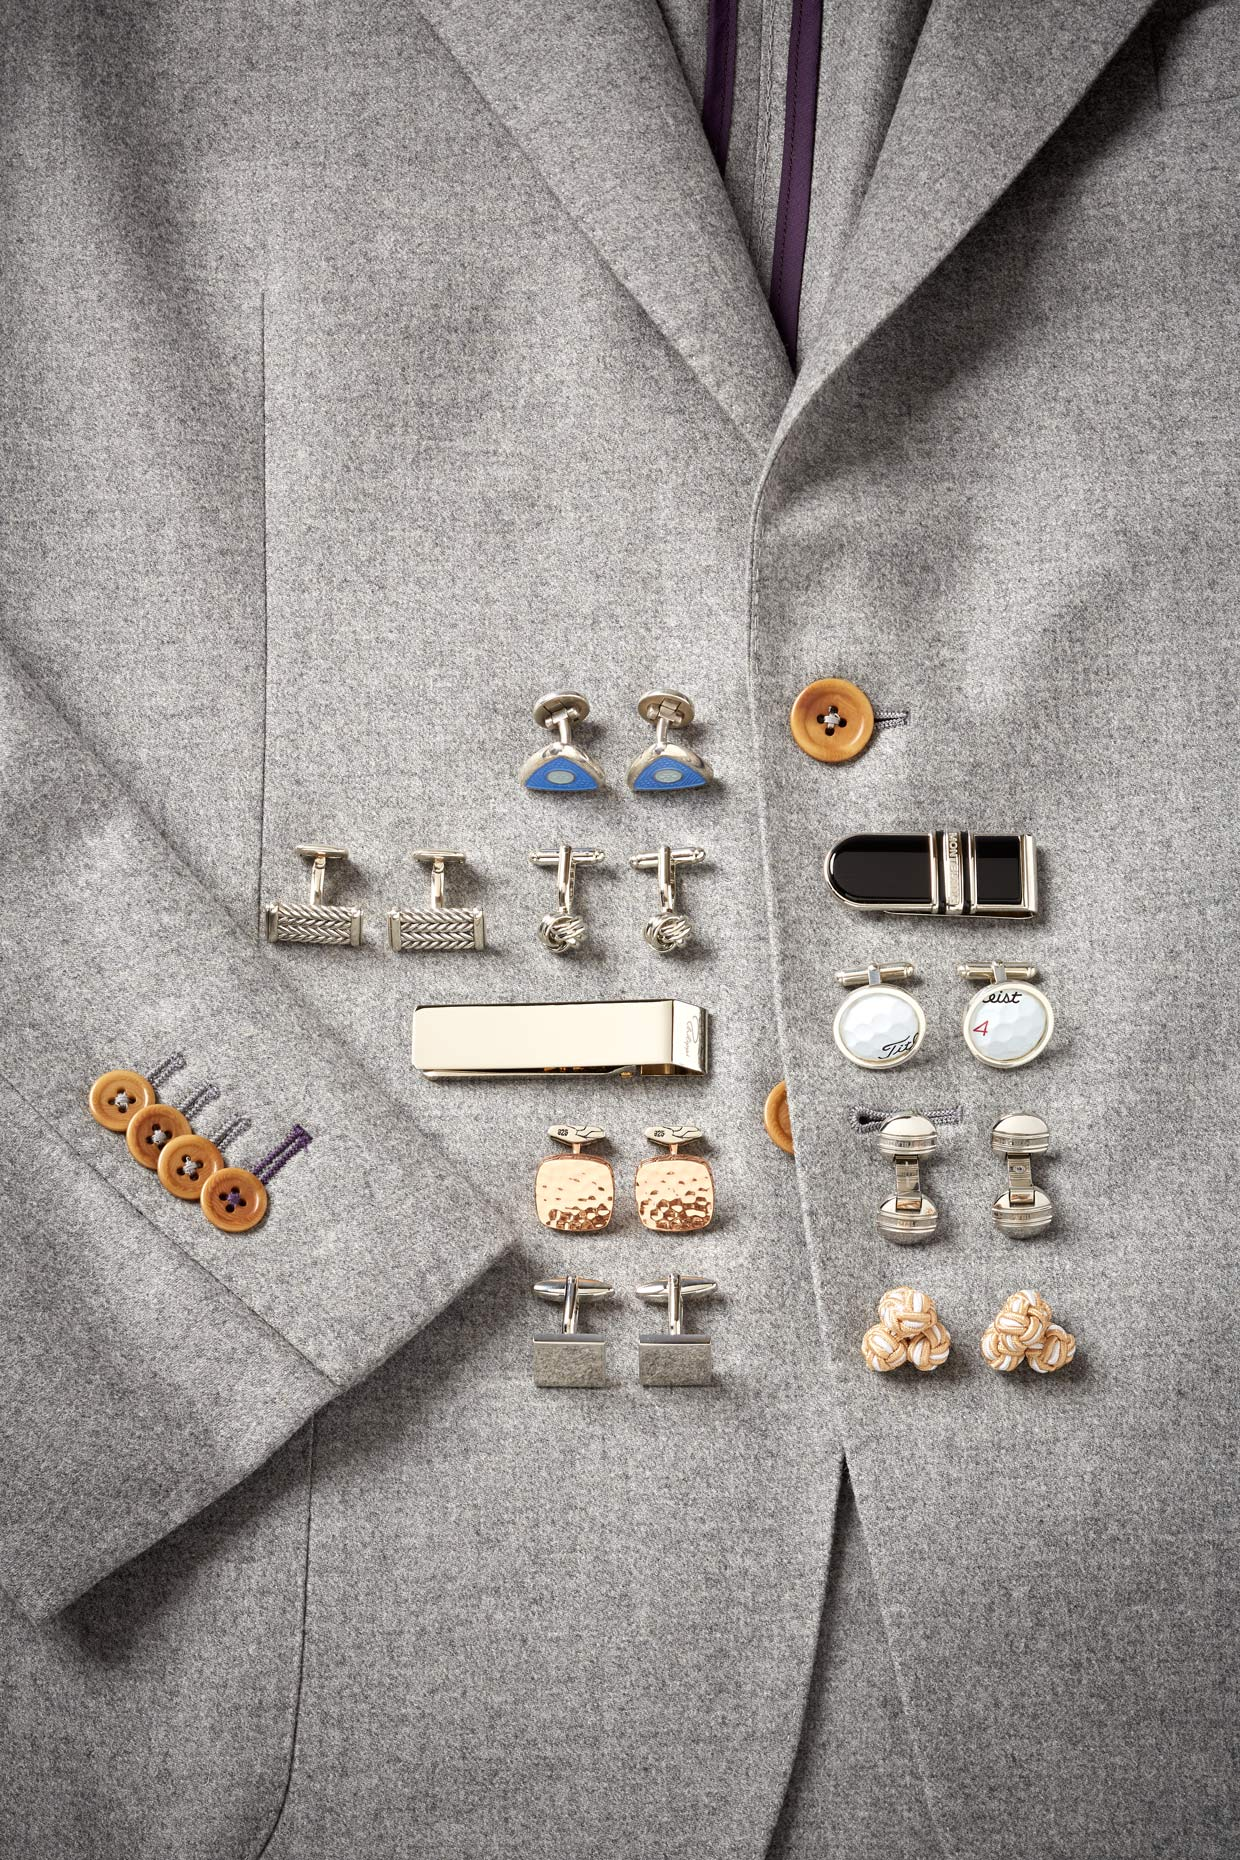 Product photography Jewelry Derek Israelsen Brass Tacks Cufflinks